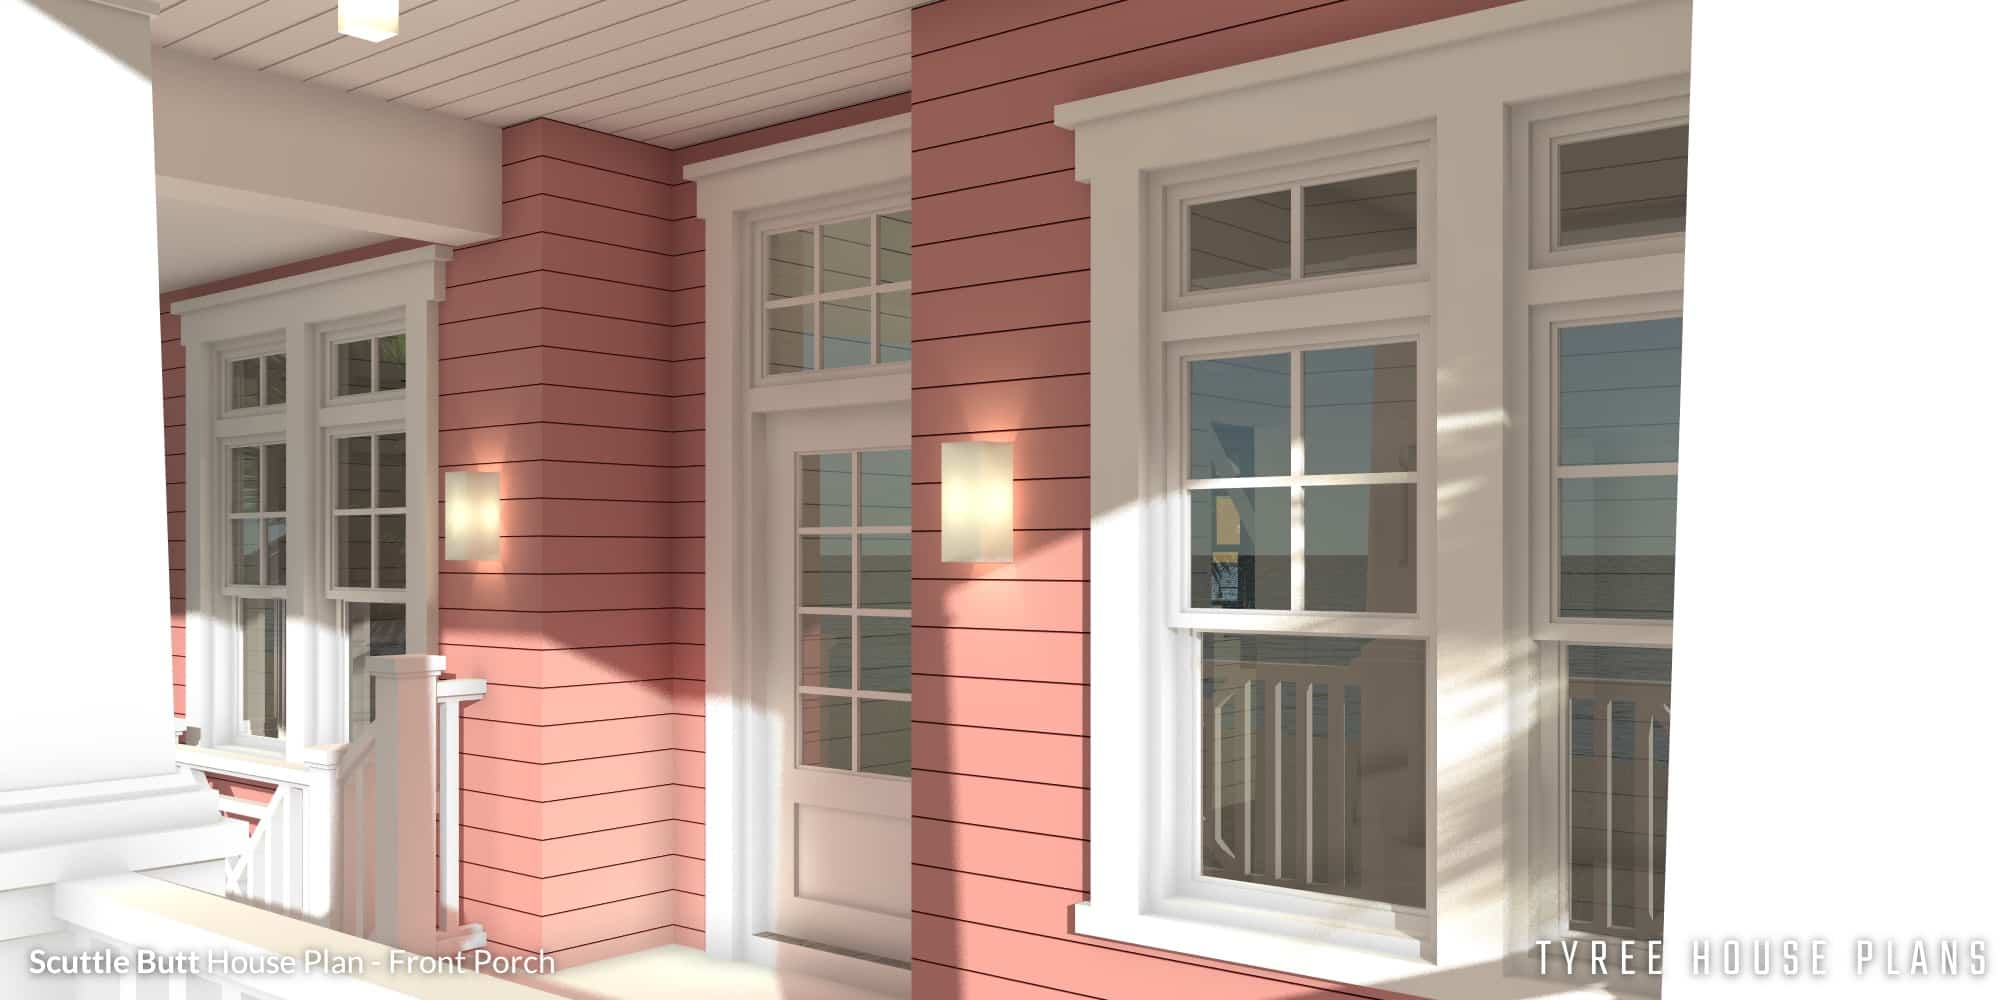 Scuttle Butt House Plan - Front Porch